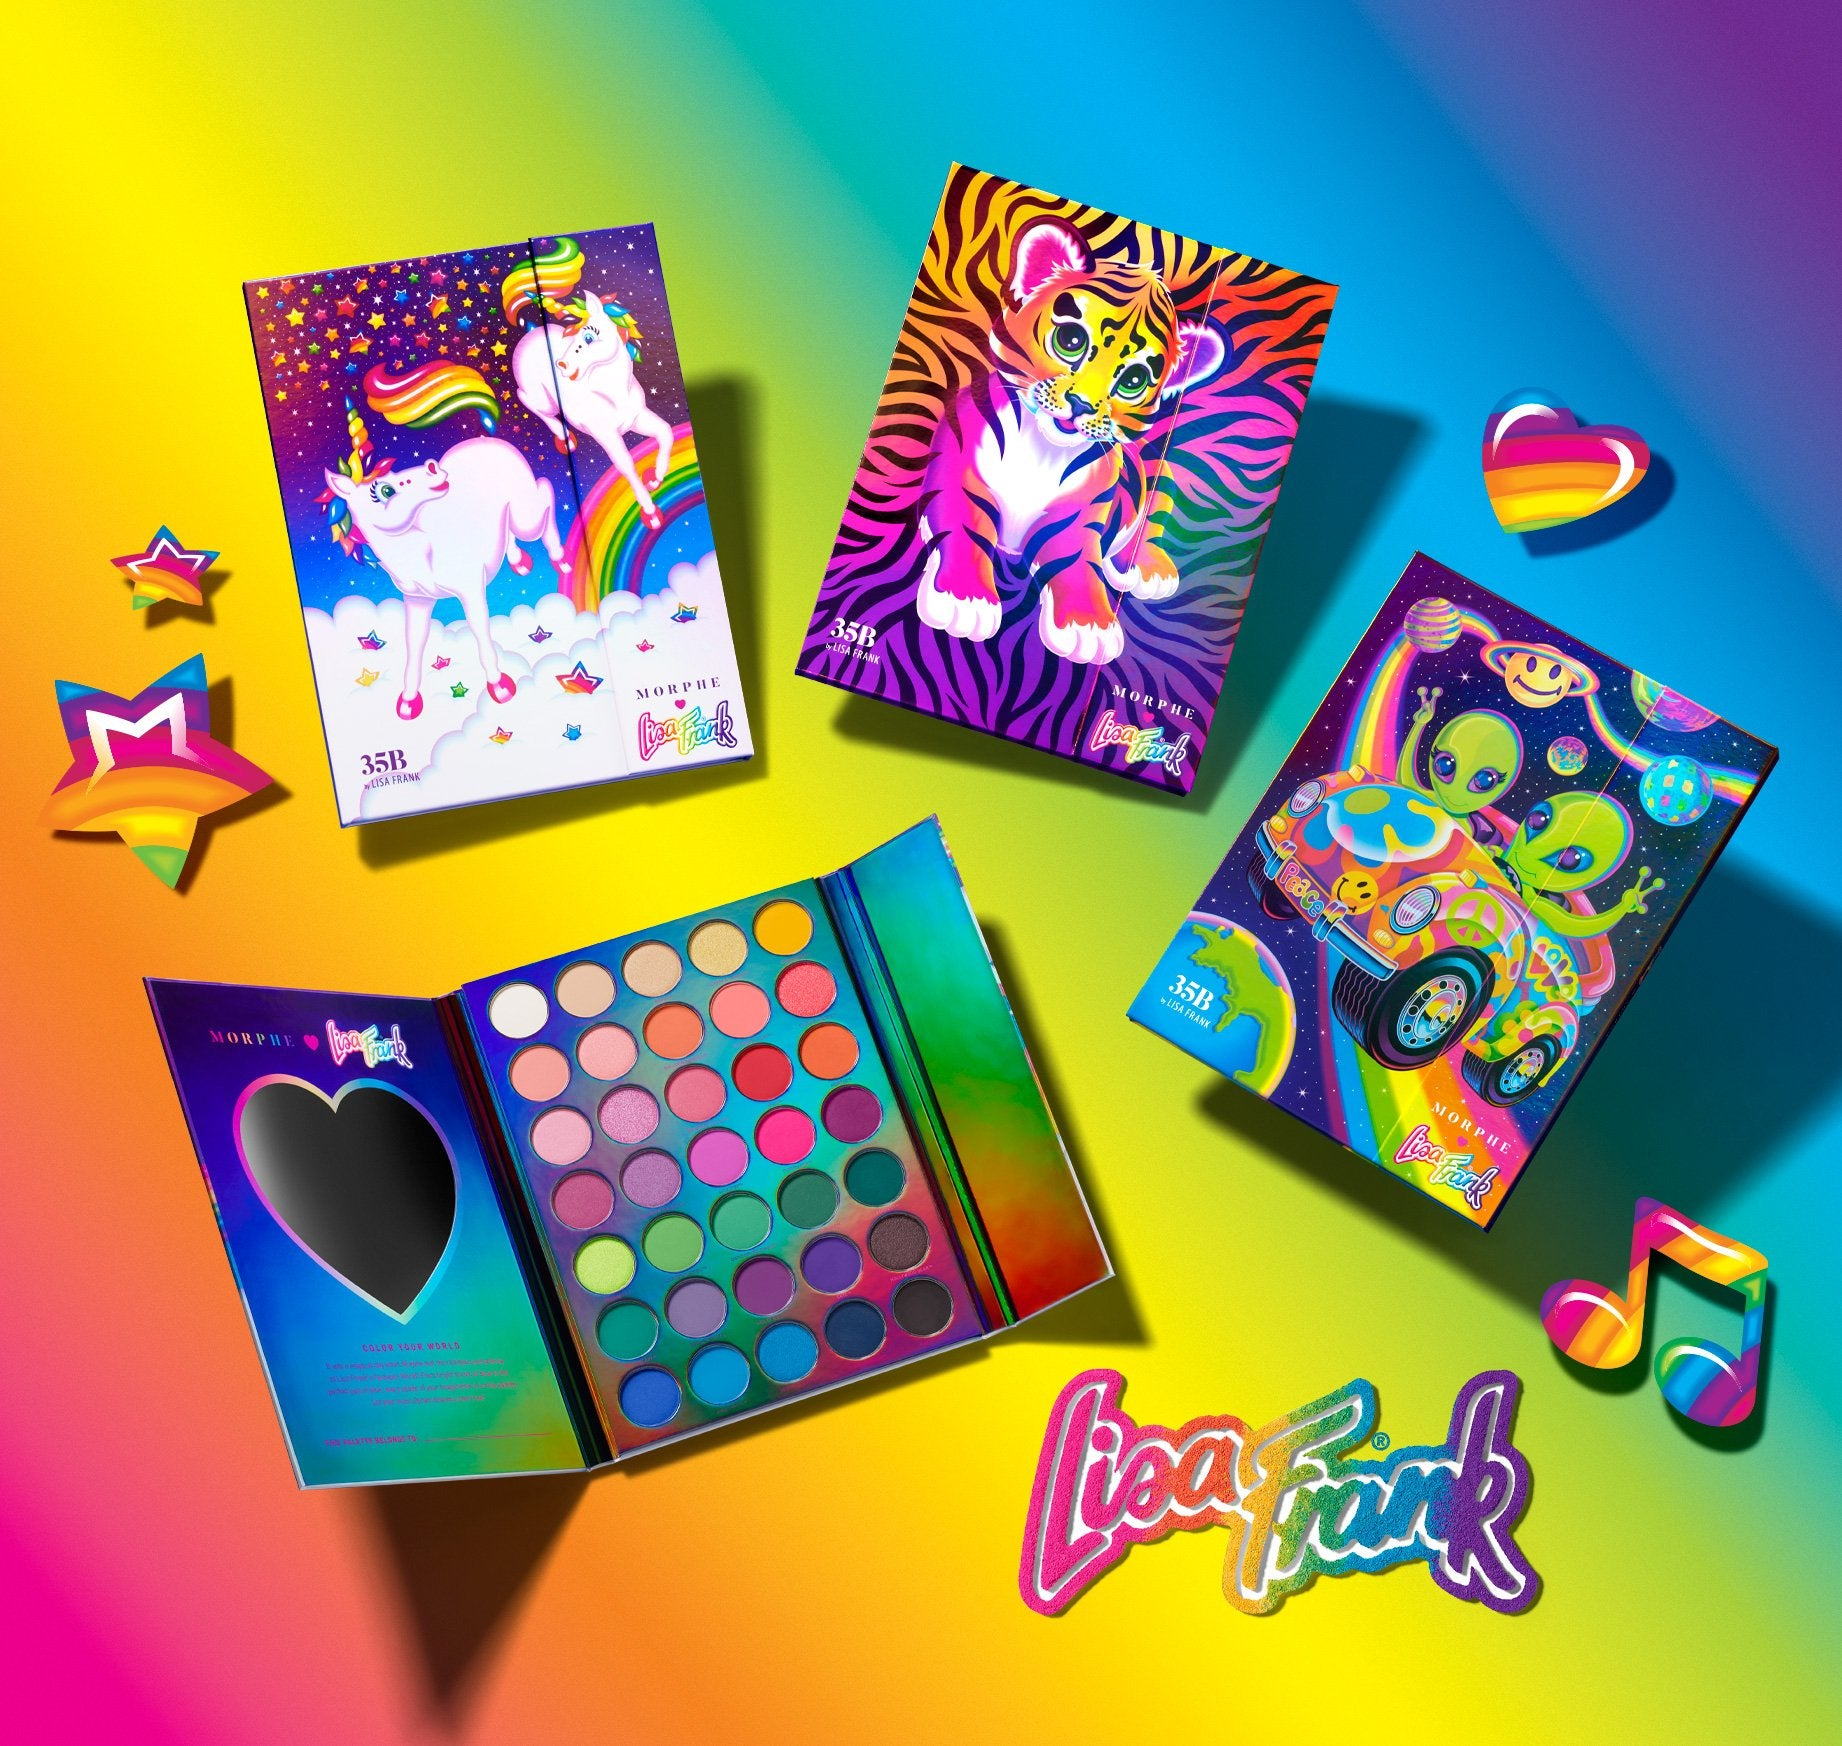 Morphe X Lisa Frank 35b By Lisa Frank Artistry Palette Forrest 🌈 link in bio ✨ #giveaway 3 lucky #morphebabes will win the entire morphe @lisafrank collection + pr box! morphe x lisa frank 35b by lisa frank artistry palette forrest